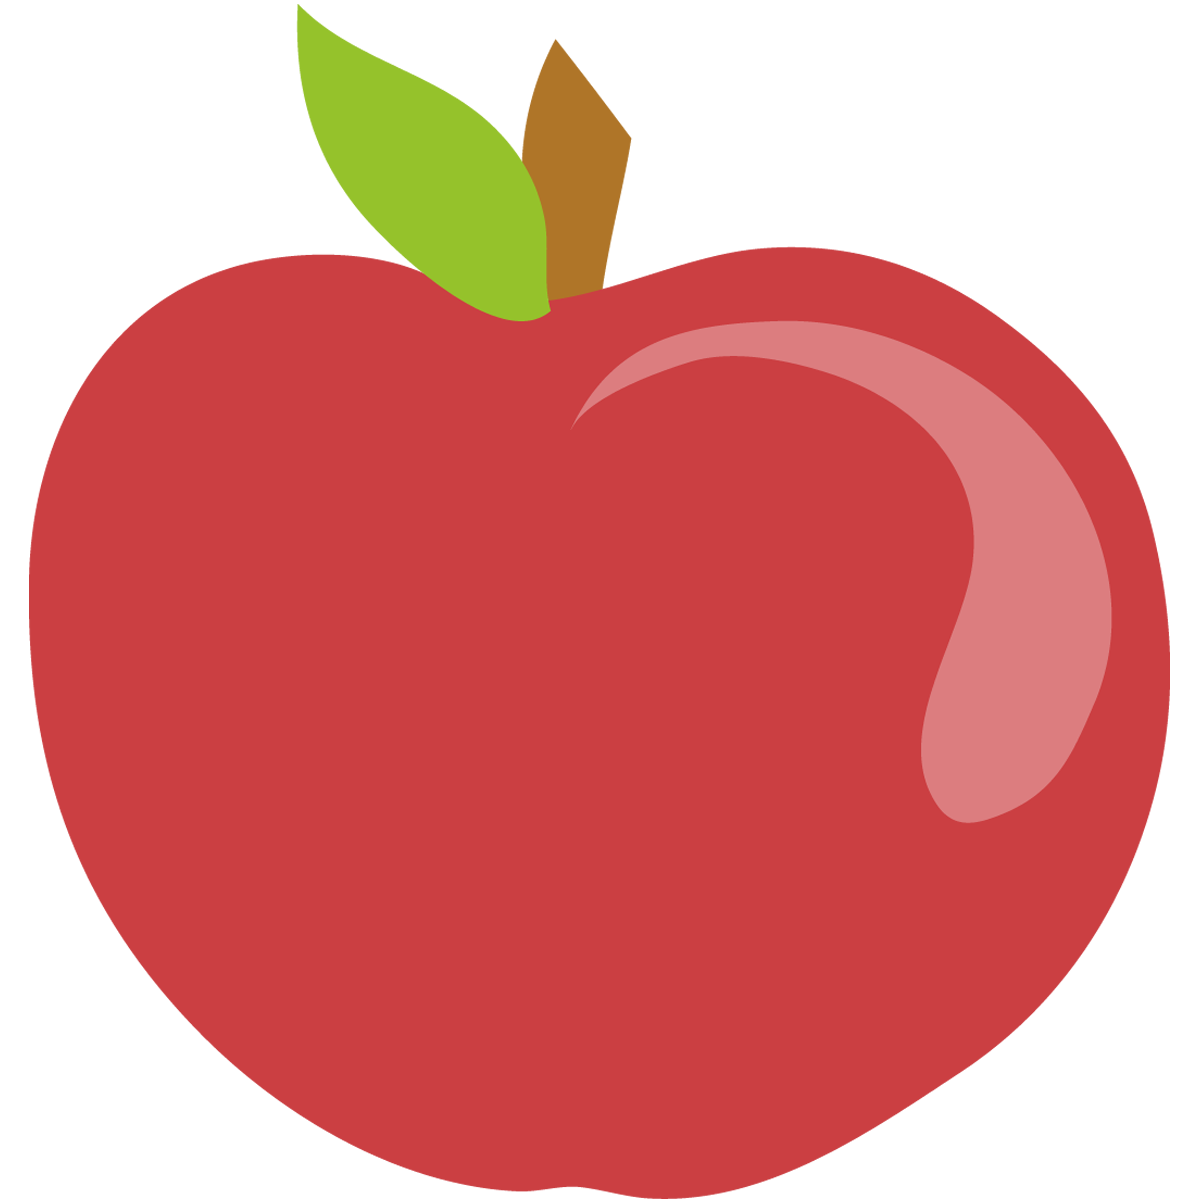 Snow White Apple Emoji Seven Dwarfs Clip art